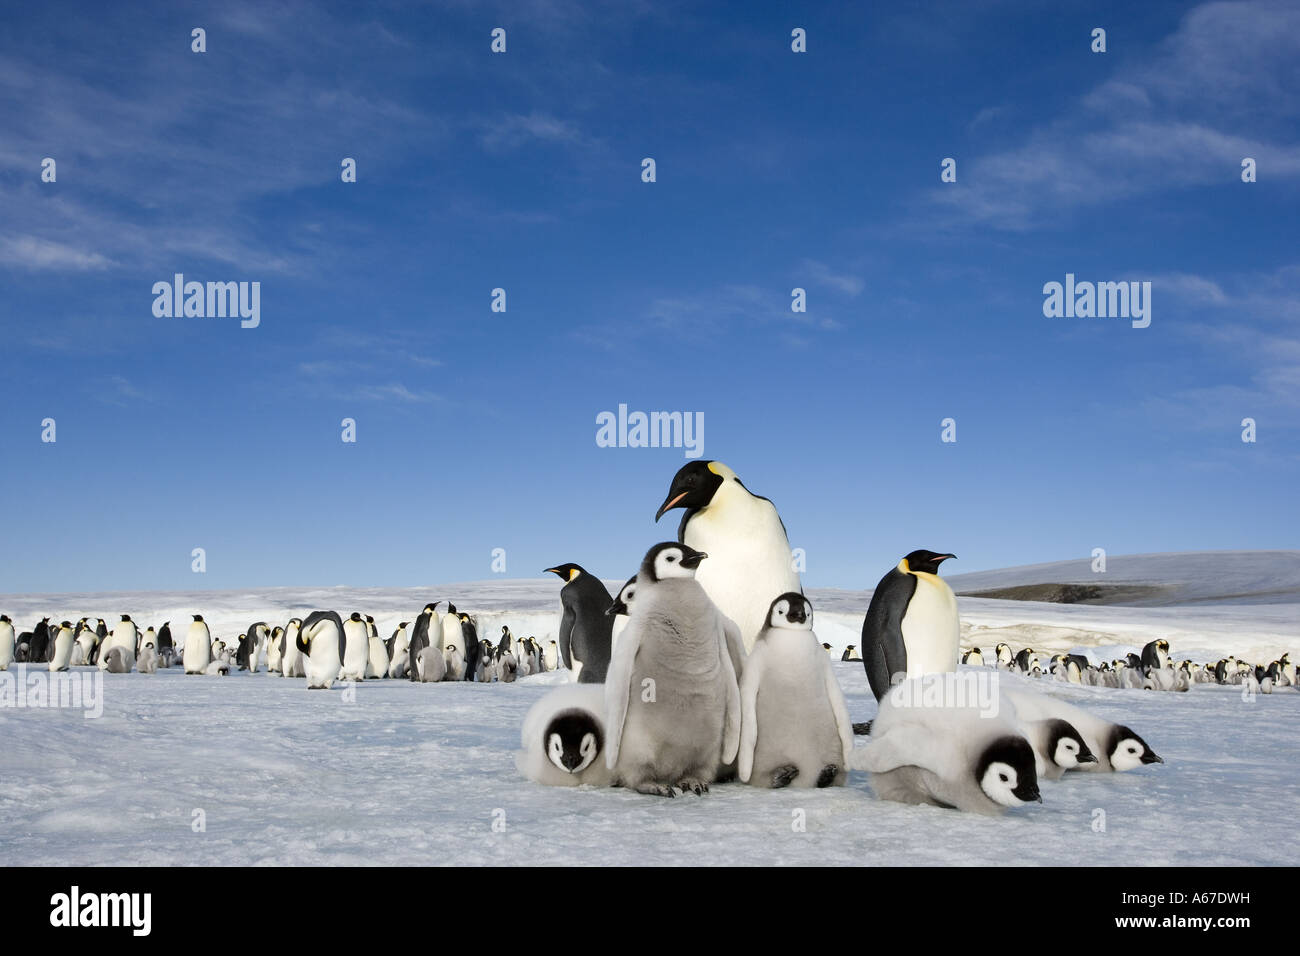 emperor penguins with cubs / Aptenodytes forsteri - Stock Image